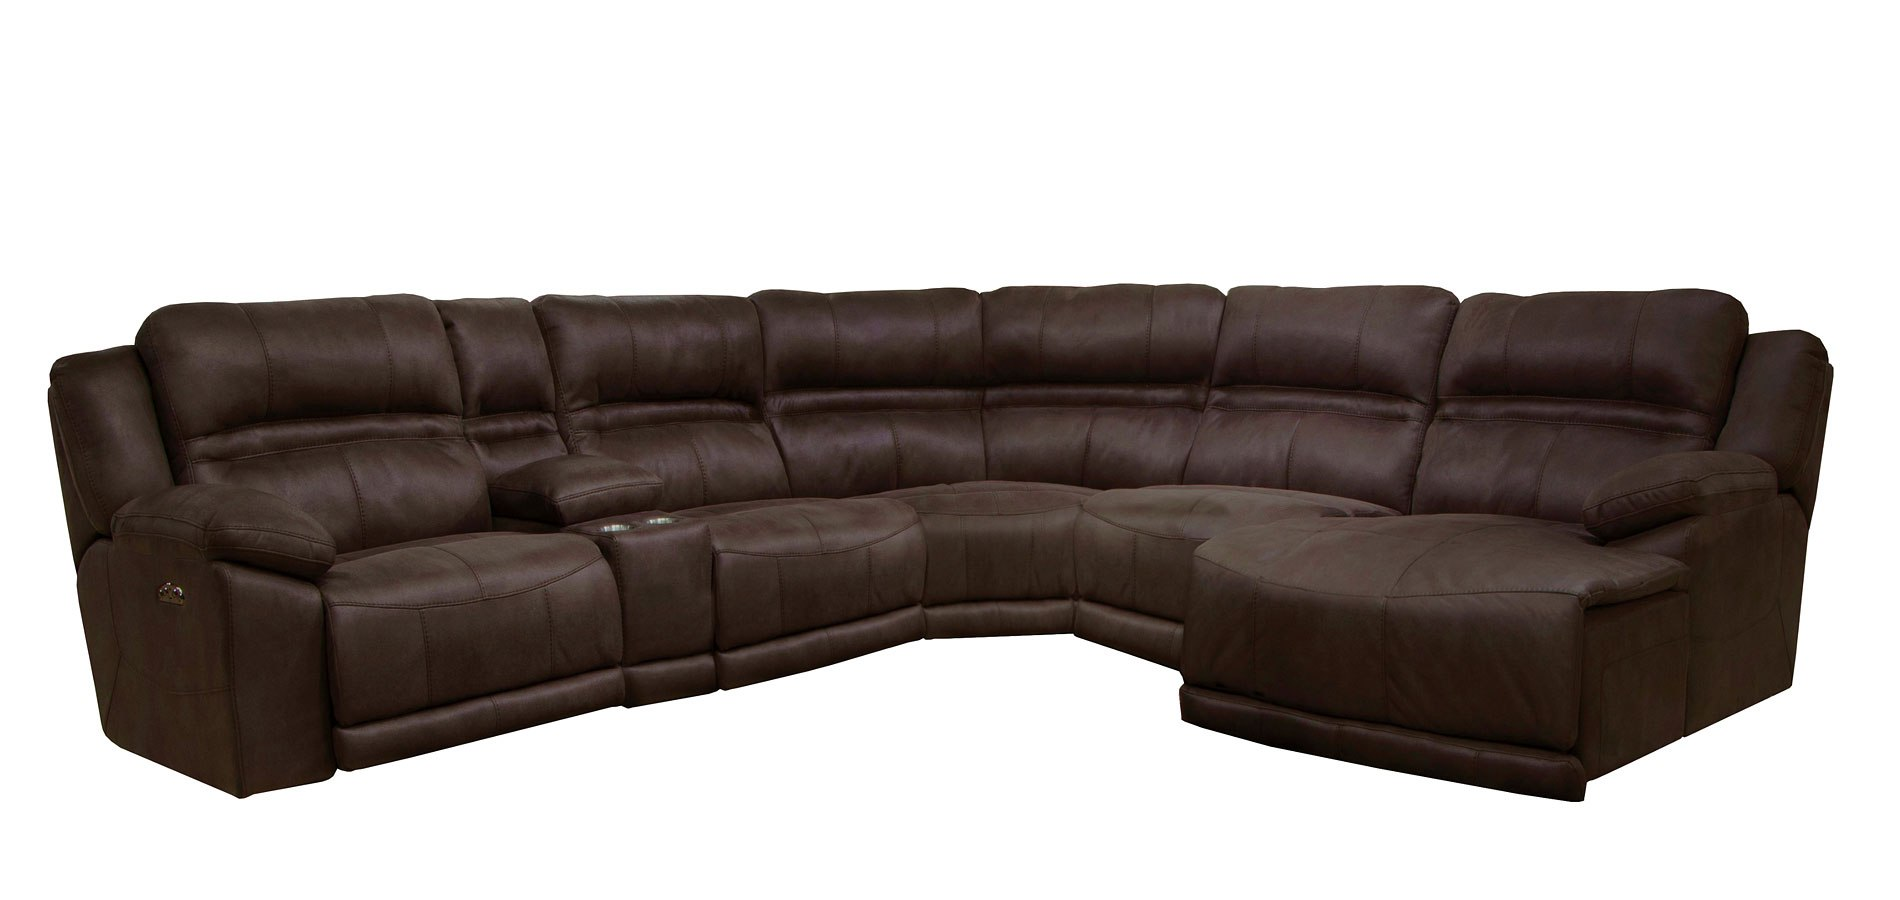 Delicieux Braxton Modular Power Reclining Sectional W/ Chaise (Dark Chocolate)